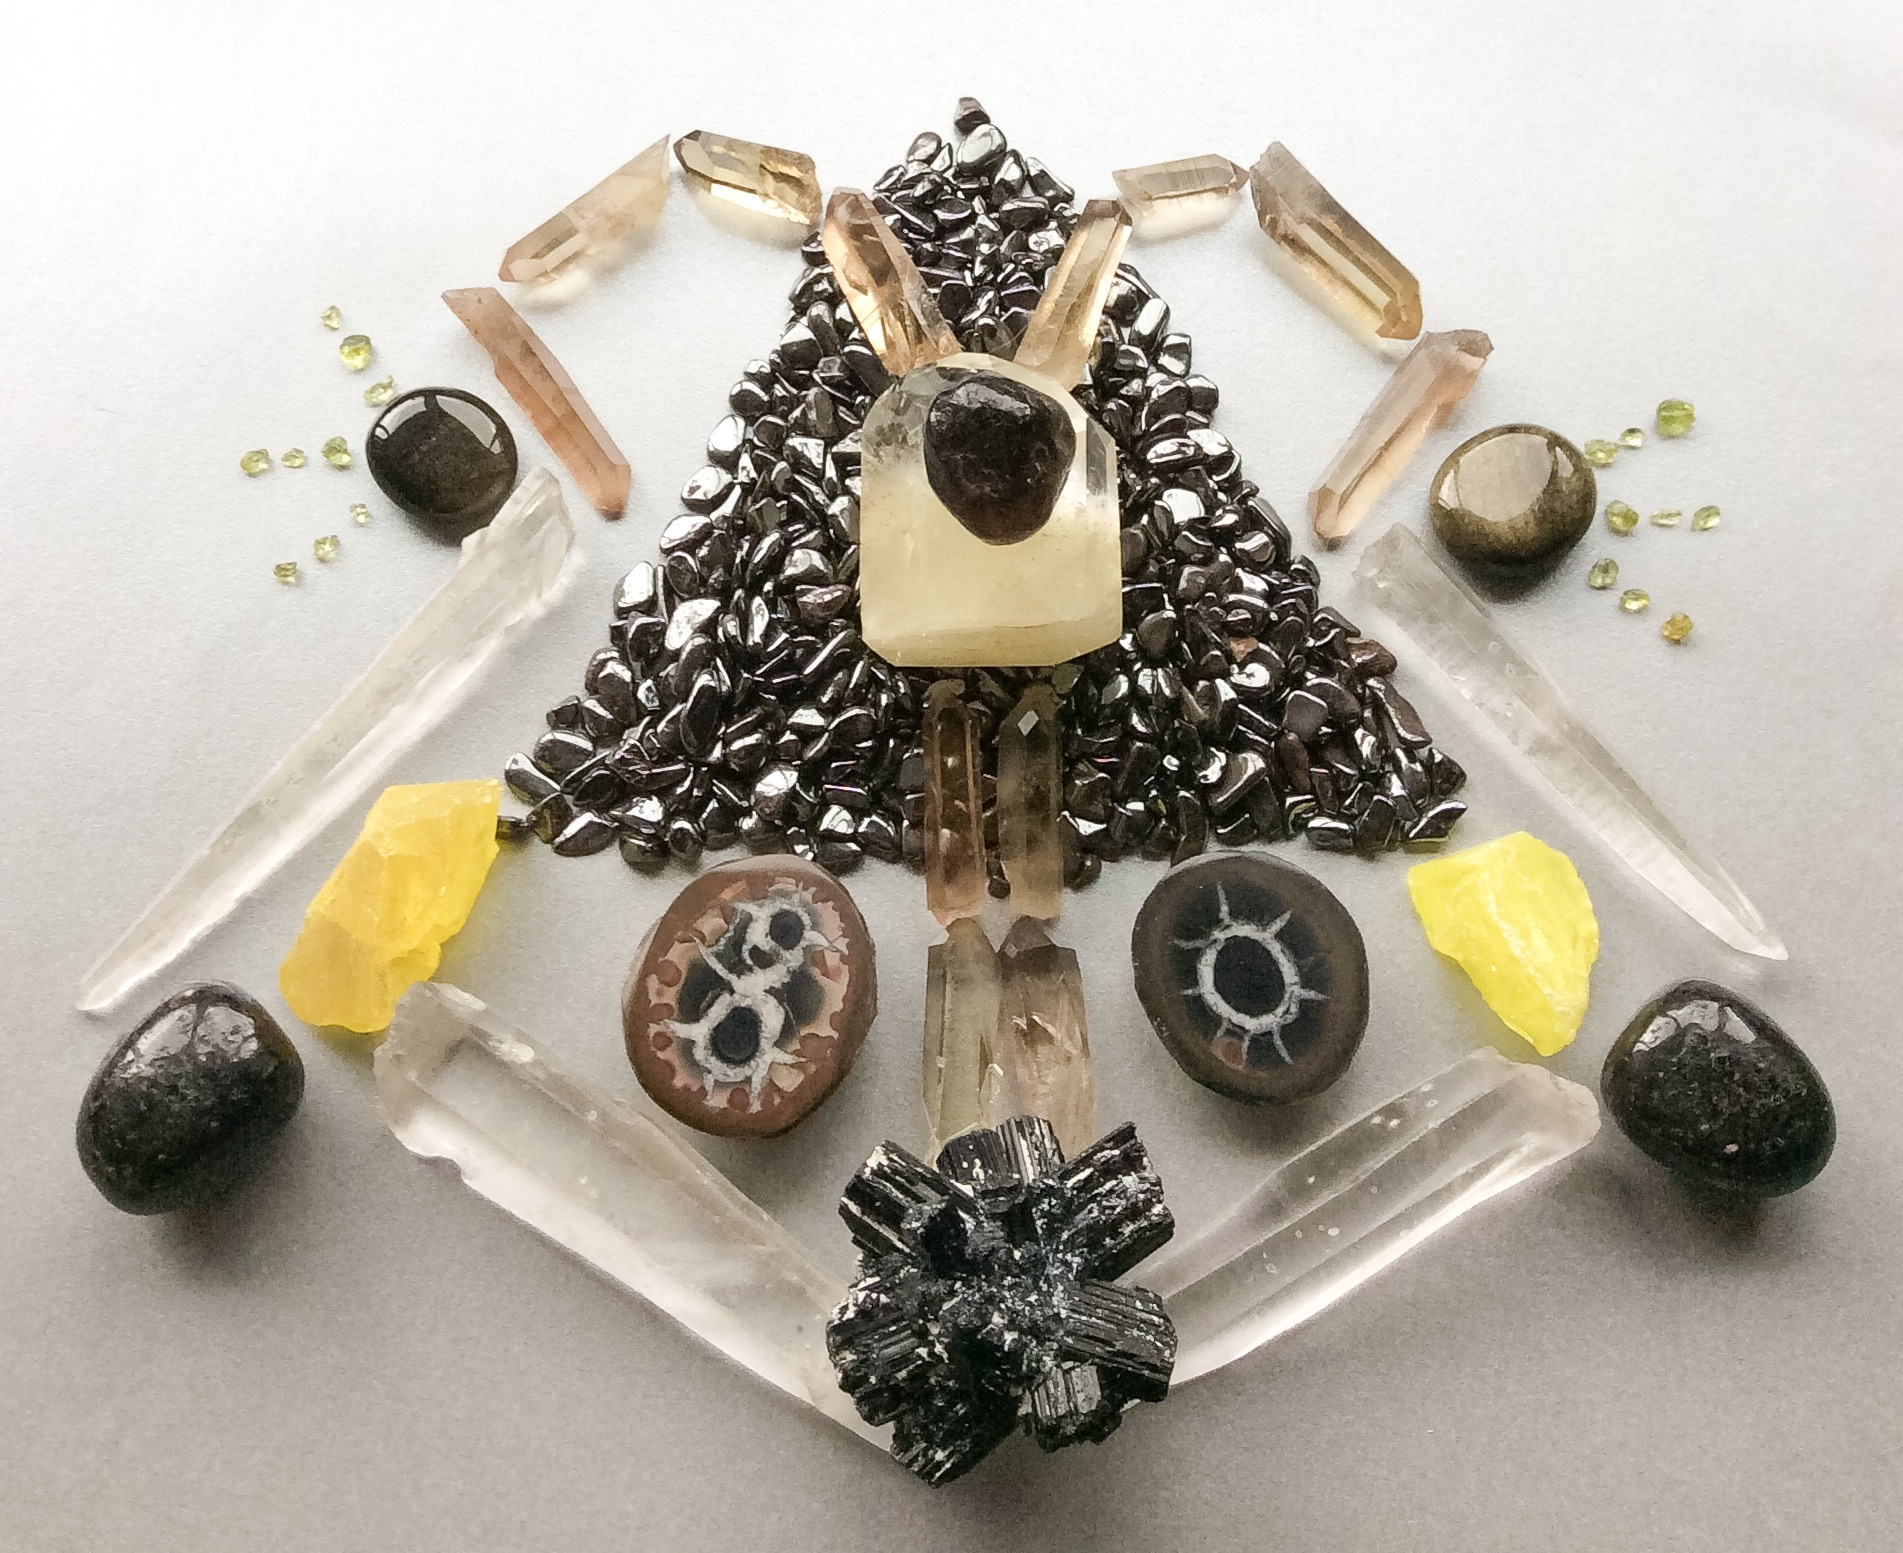 Apache Tear, Sulphur in Quartz, Hematite, Smokey Lemurian Quartz, Golden Sheen Obsidian, Peridot, Septarian, Sulphur, Nuummite, Laser Quartz and Schörl